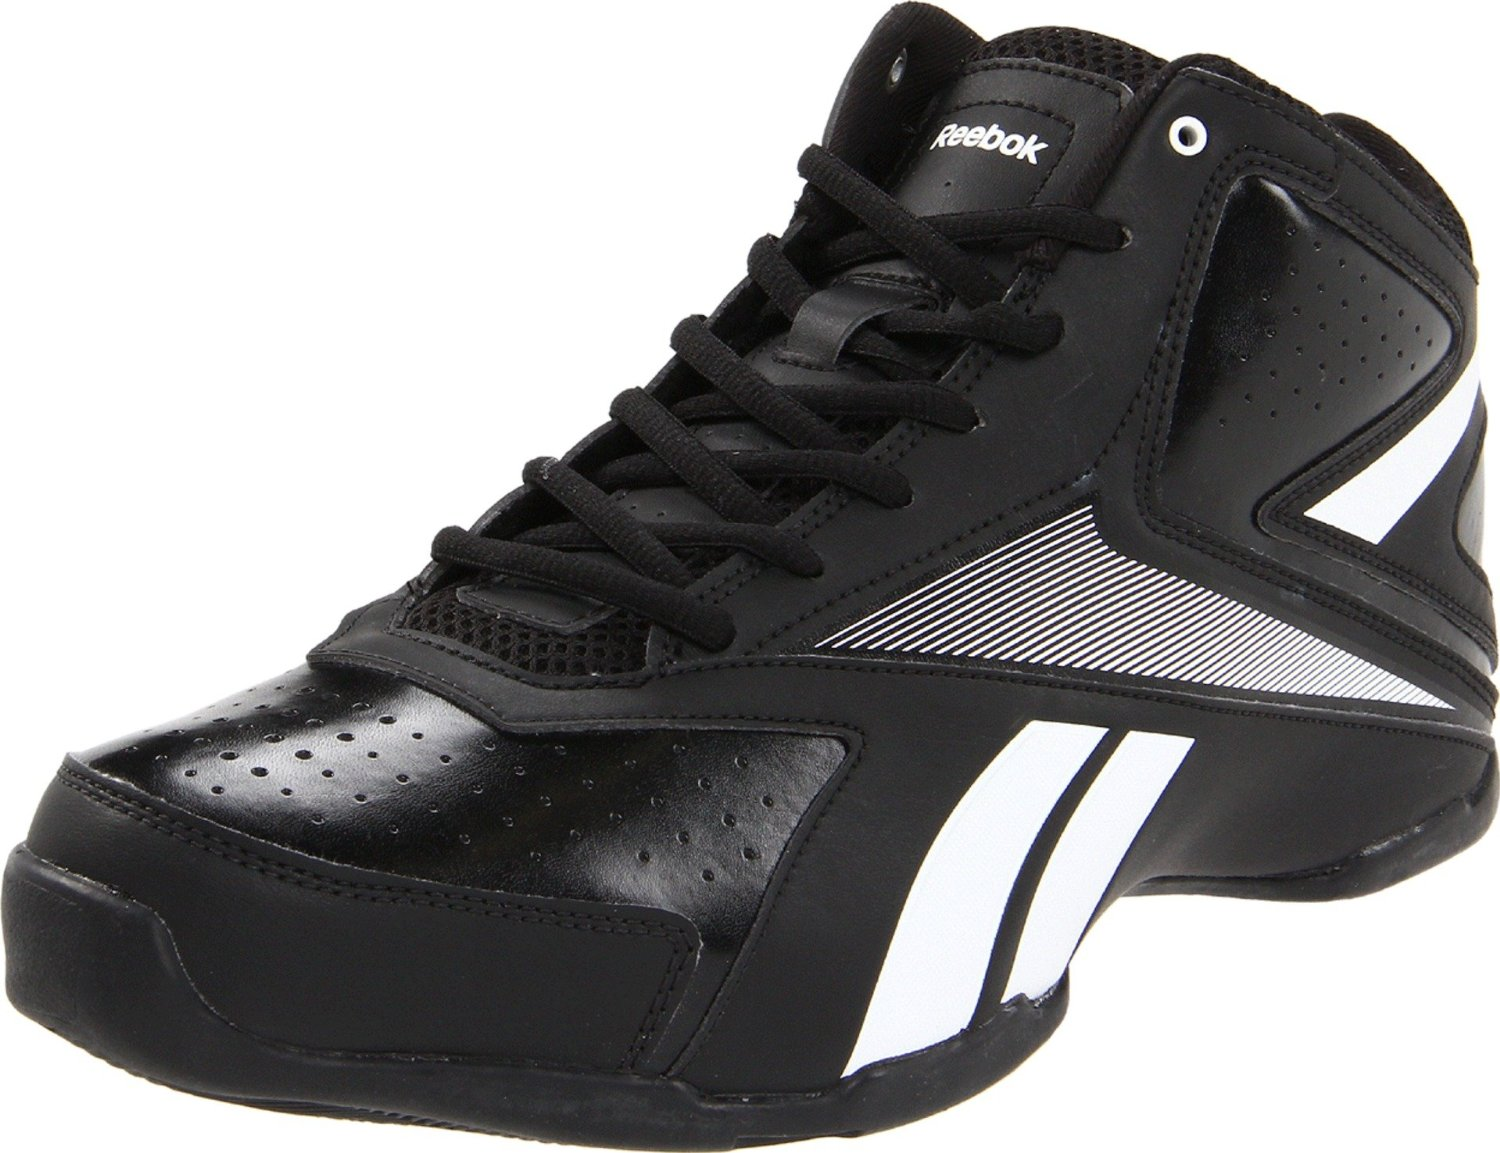 Reebok Mens Court General Mid Basketball Shoe in Black for ...